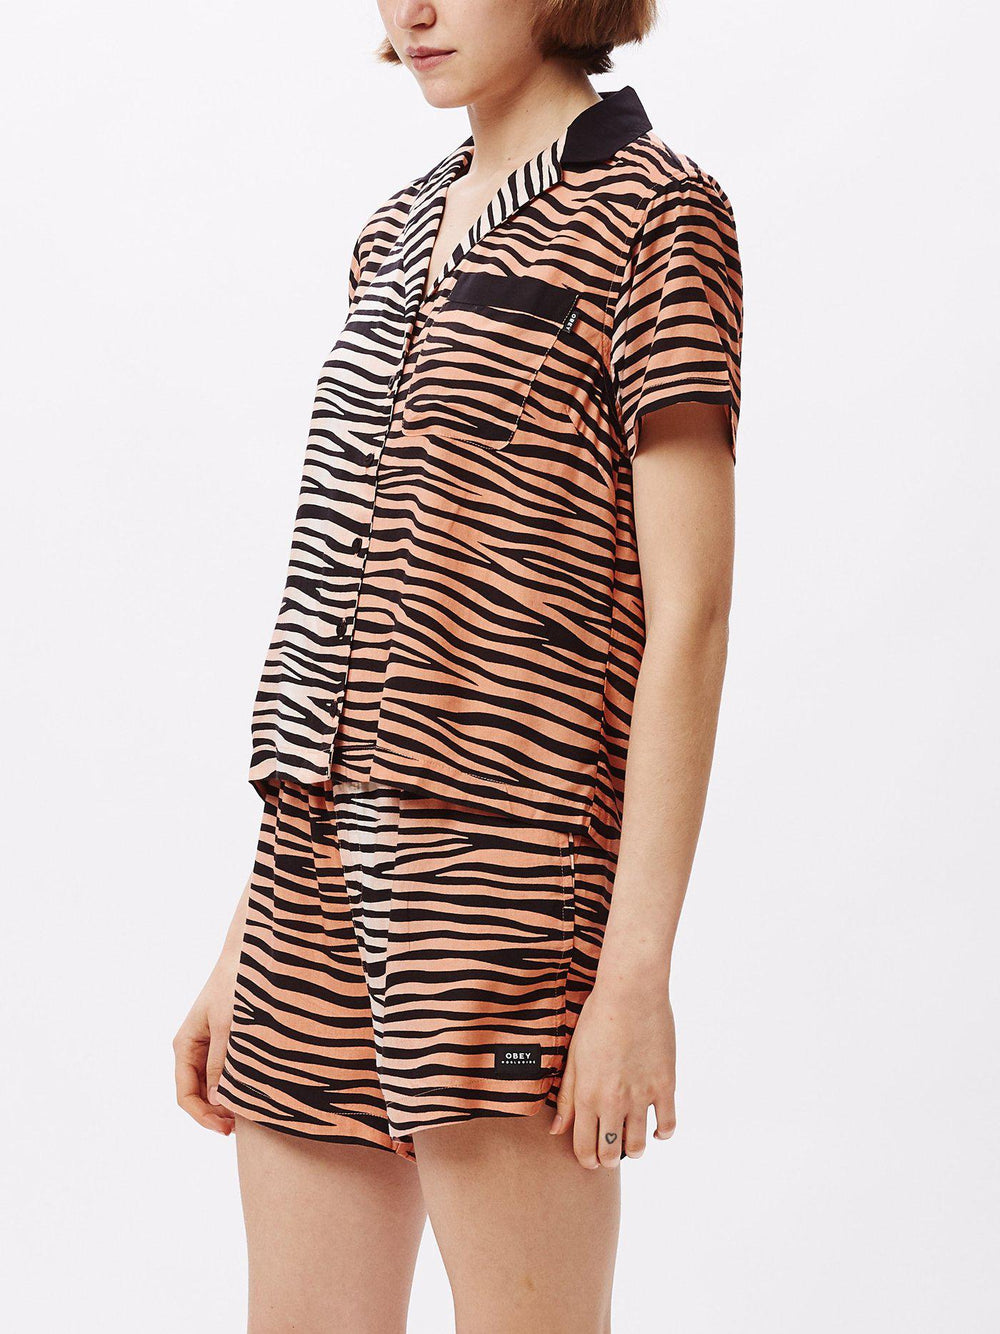 Obey Kitty Shirt Woven-The Trendy Walrus